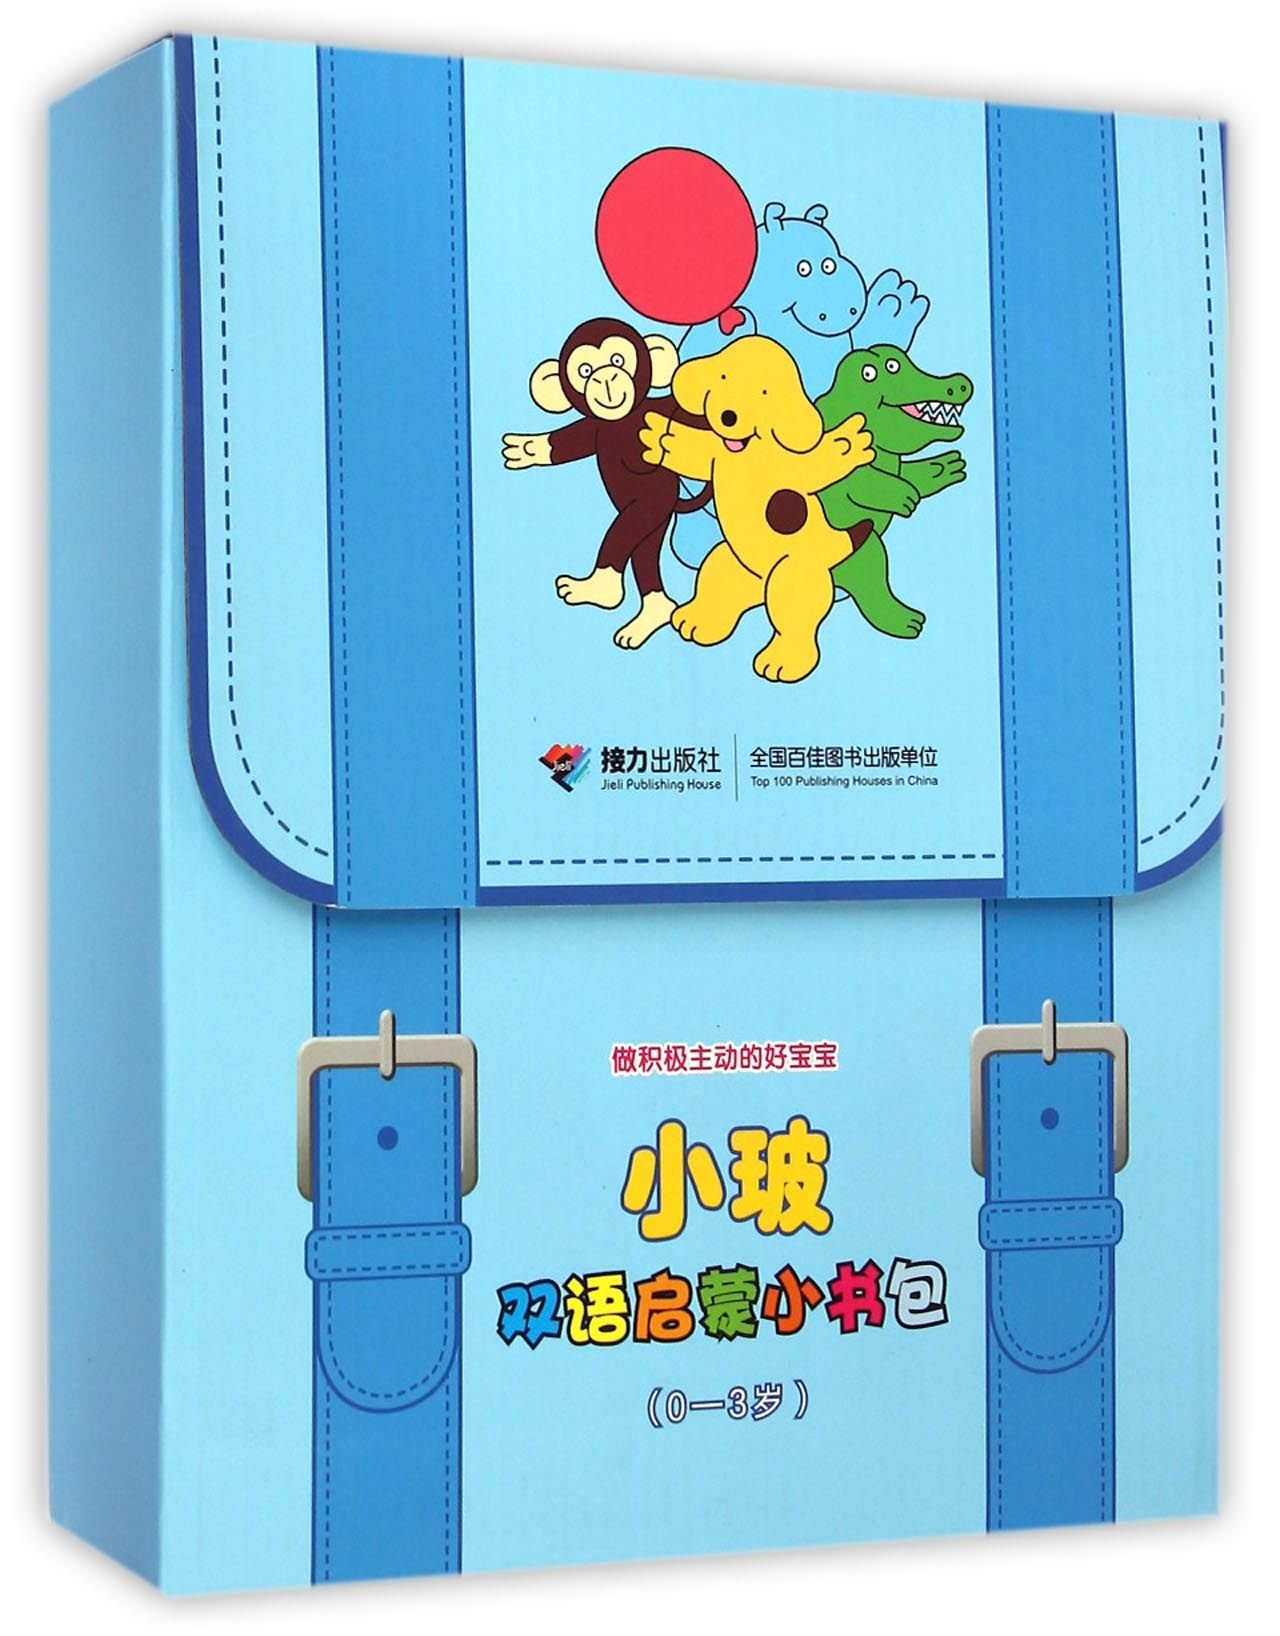 Download Xiao Bo Bilingual Enlightenment School Bags (8 Volumes for 0-3 Year Olds) (English and Chinese Edition) PDF